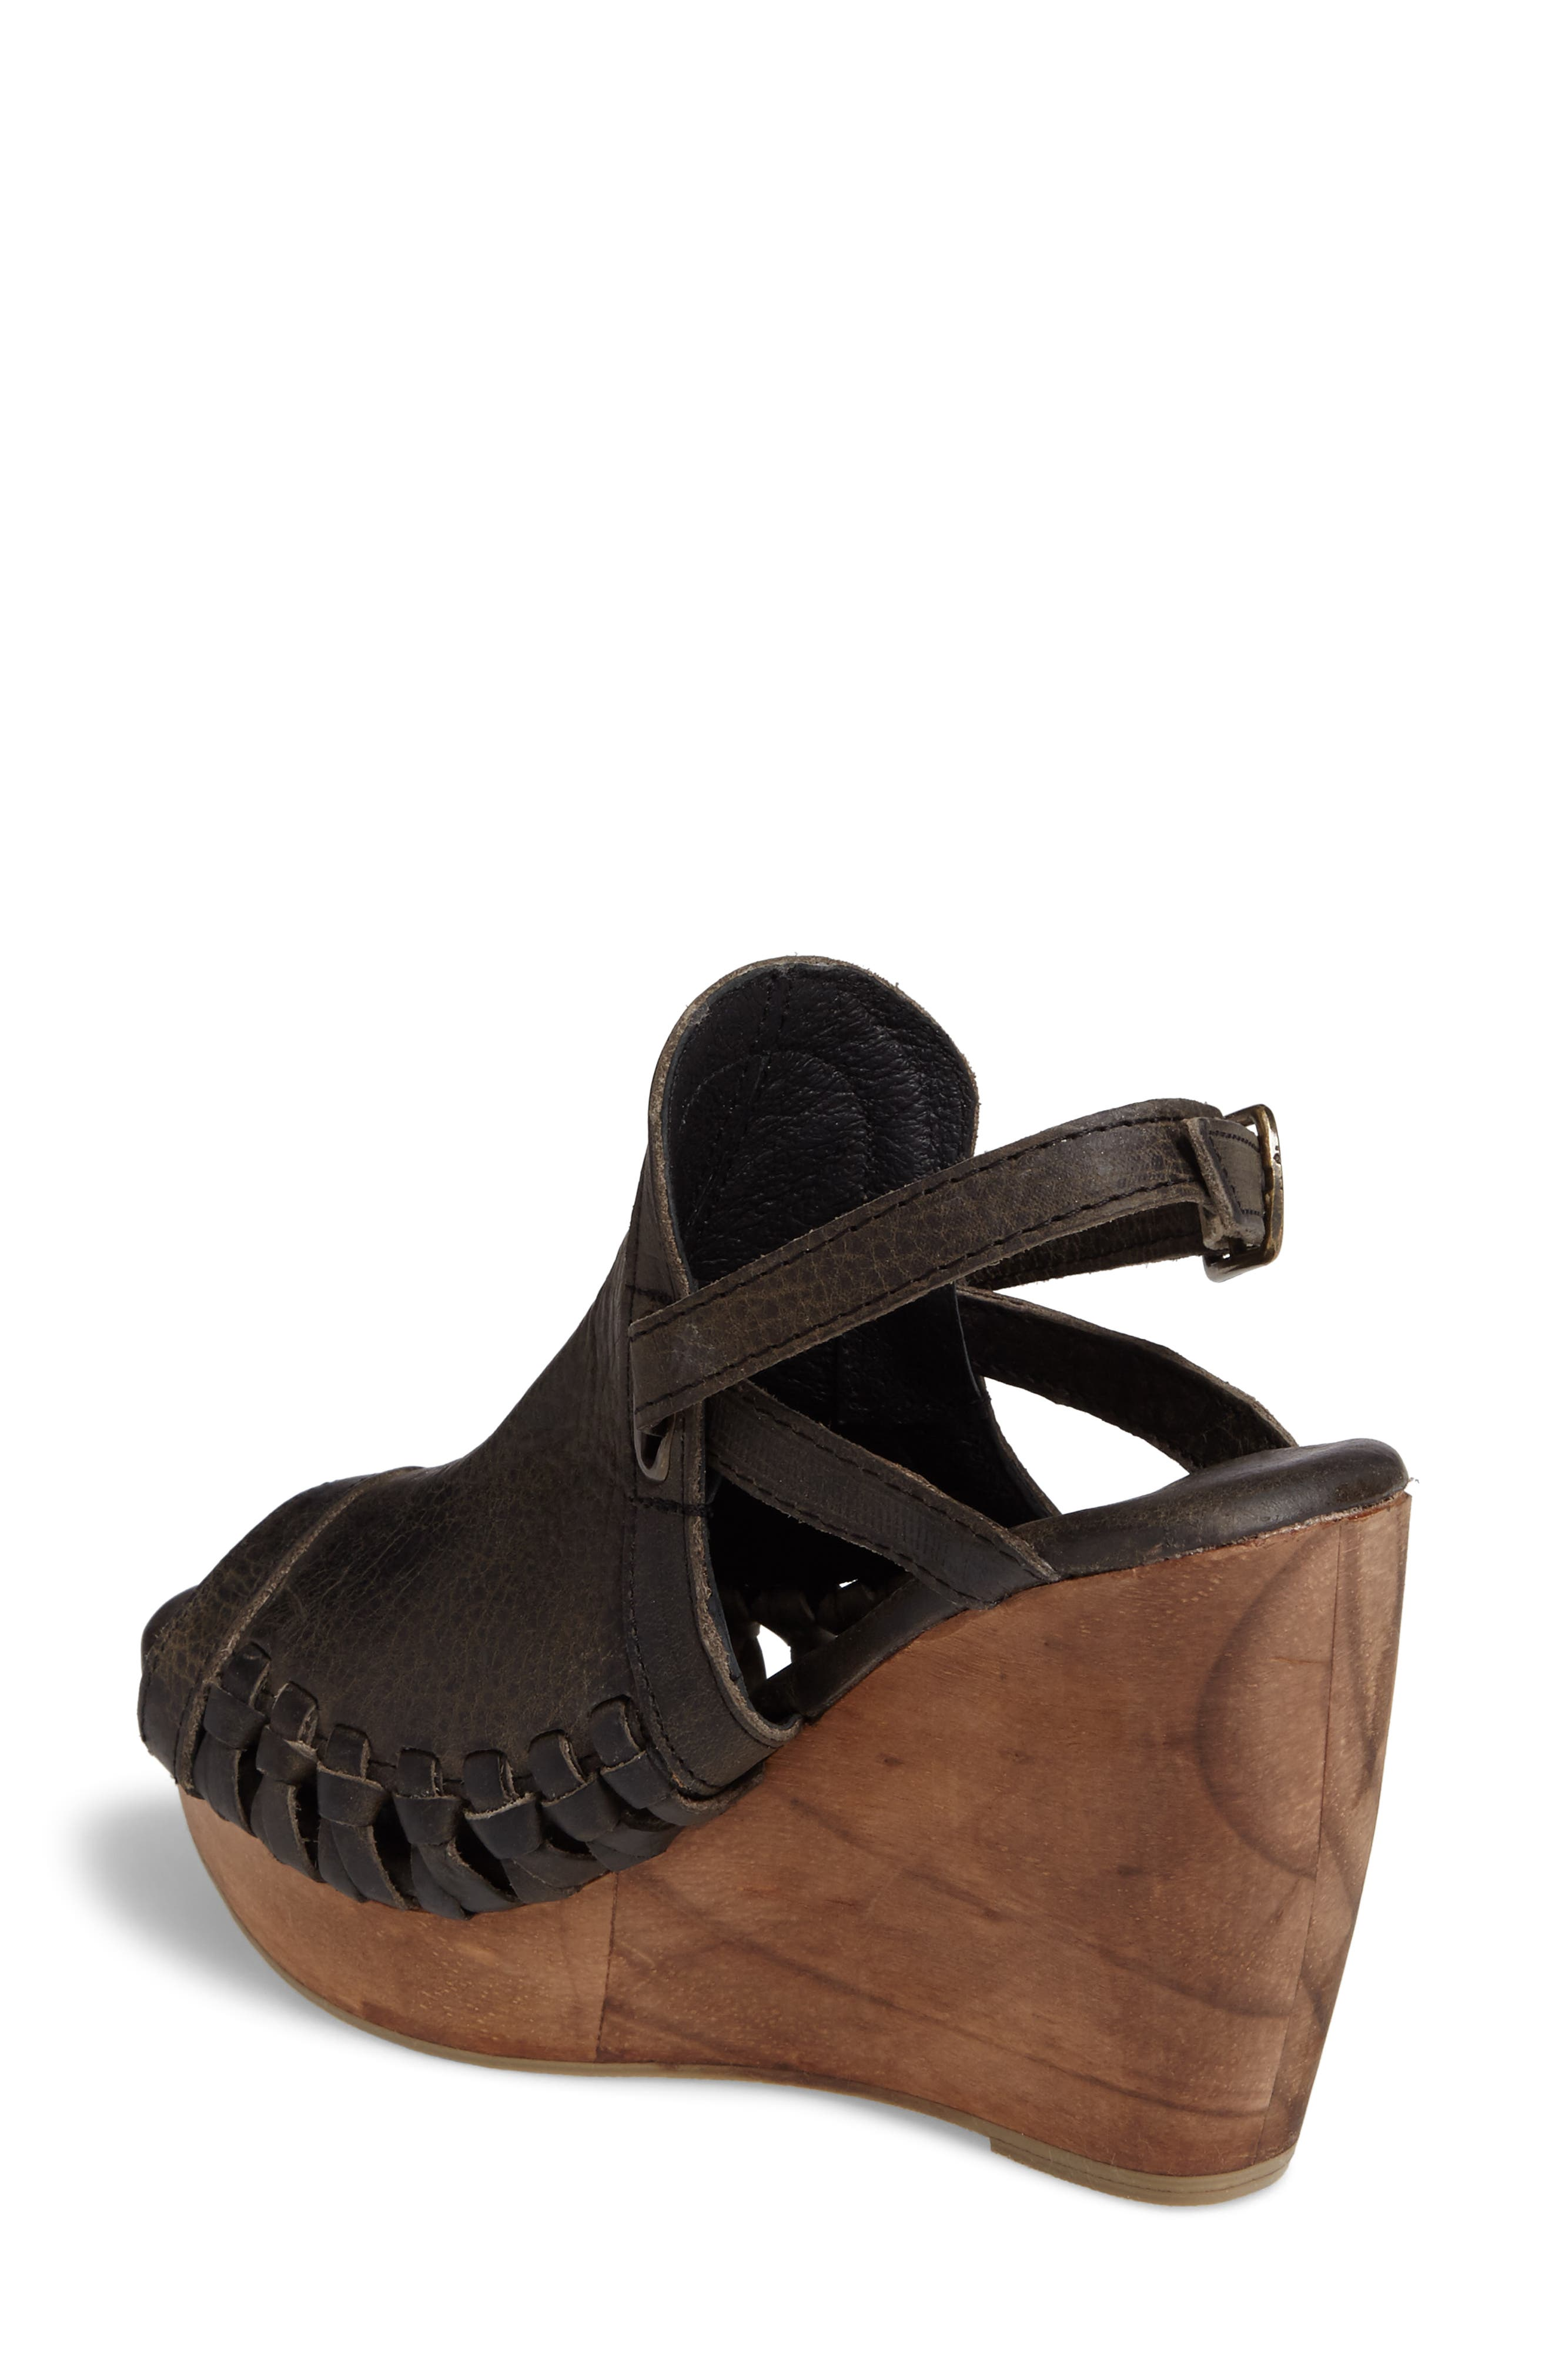 Carry Wedge Sandal,                             Alternate thumbnail 2, color,                             Grey Leather